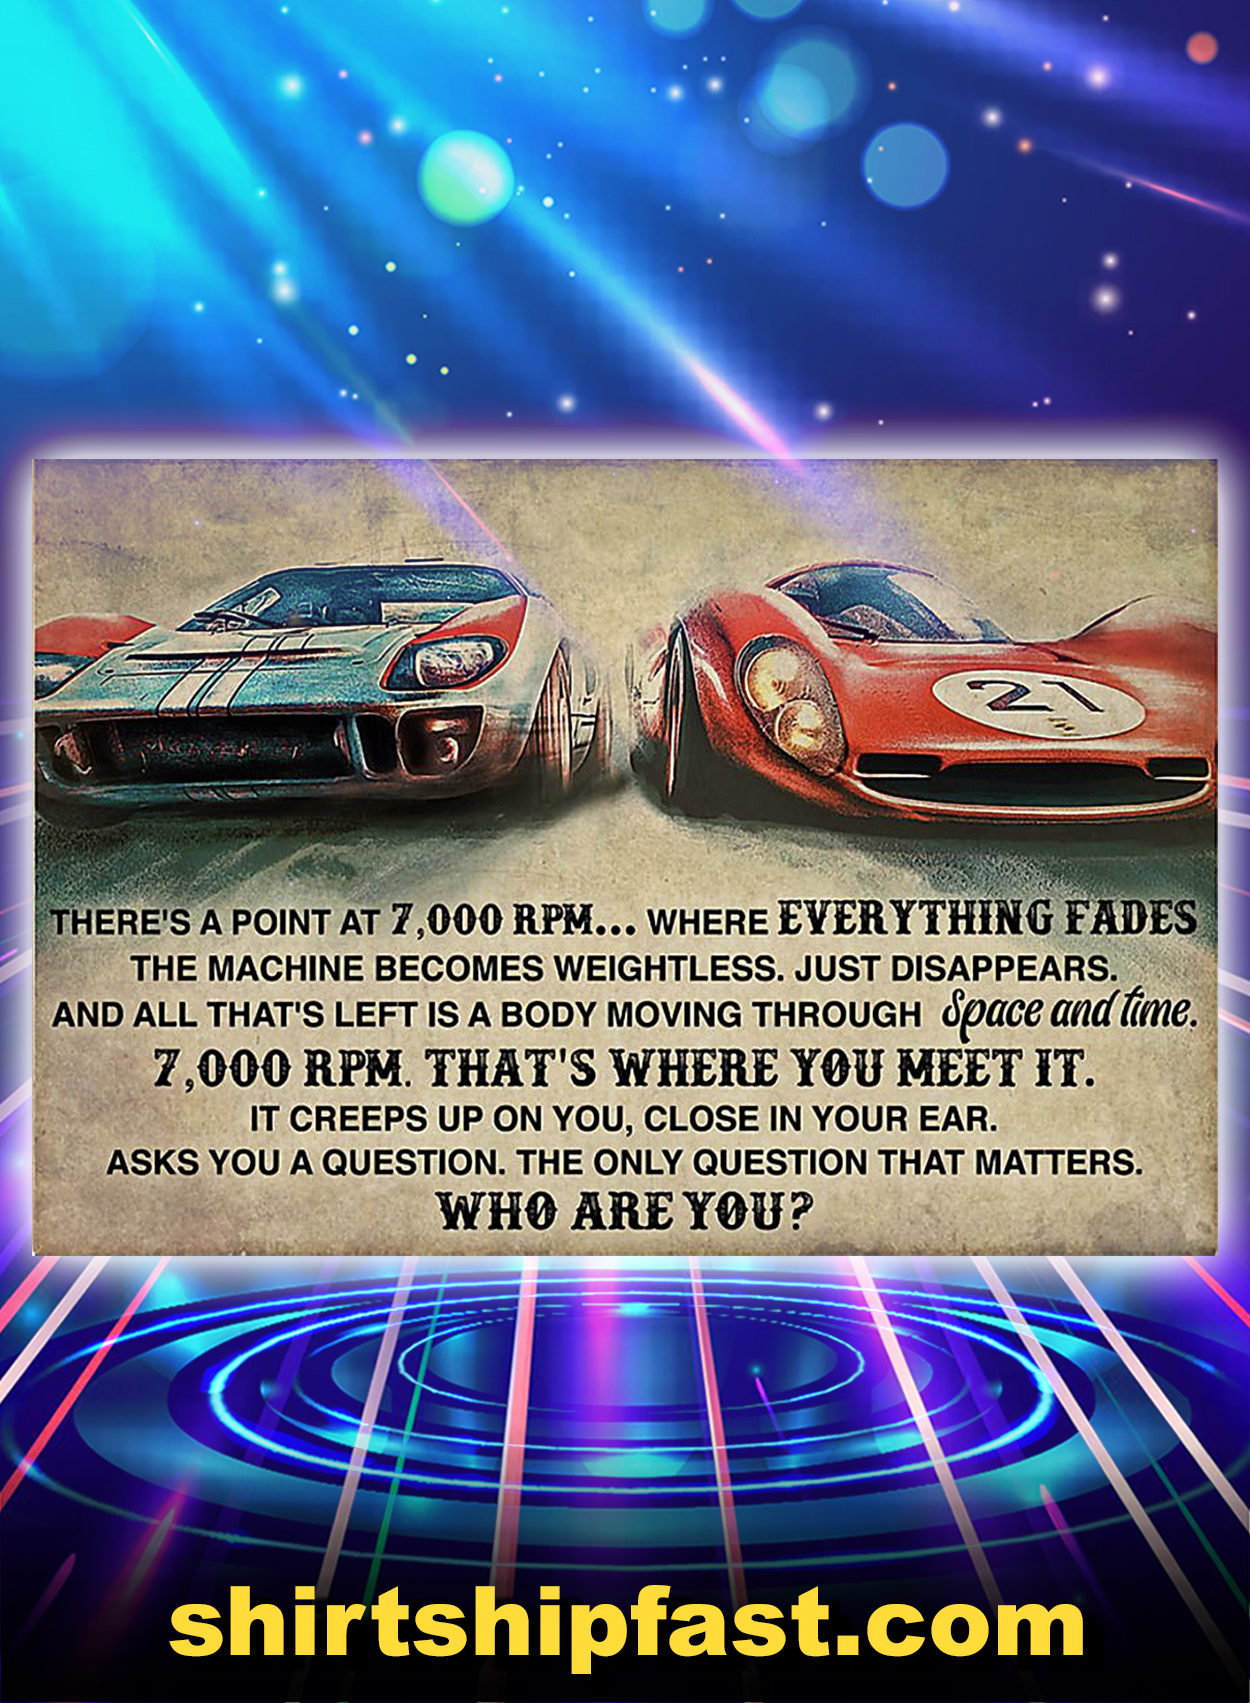 Car racing there's a point at 7000 RPM poster - A2